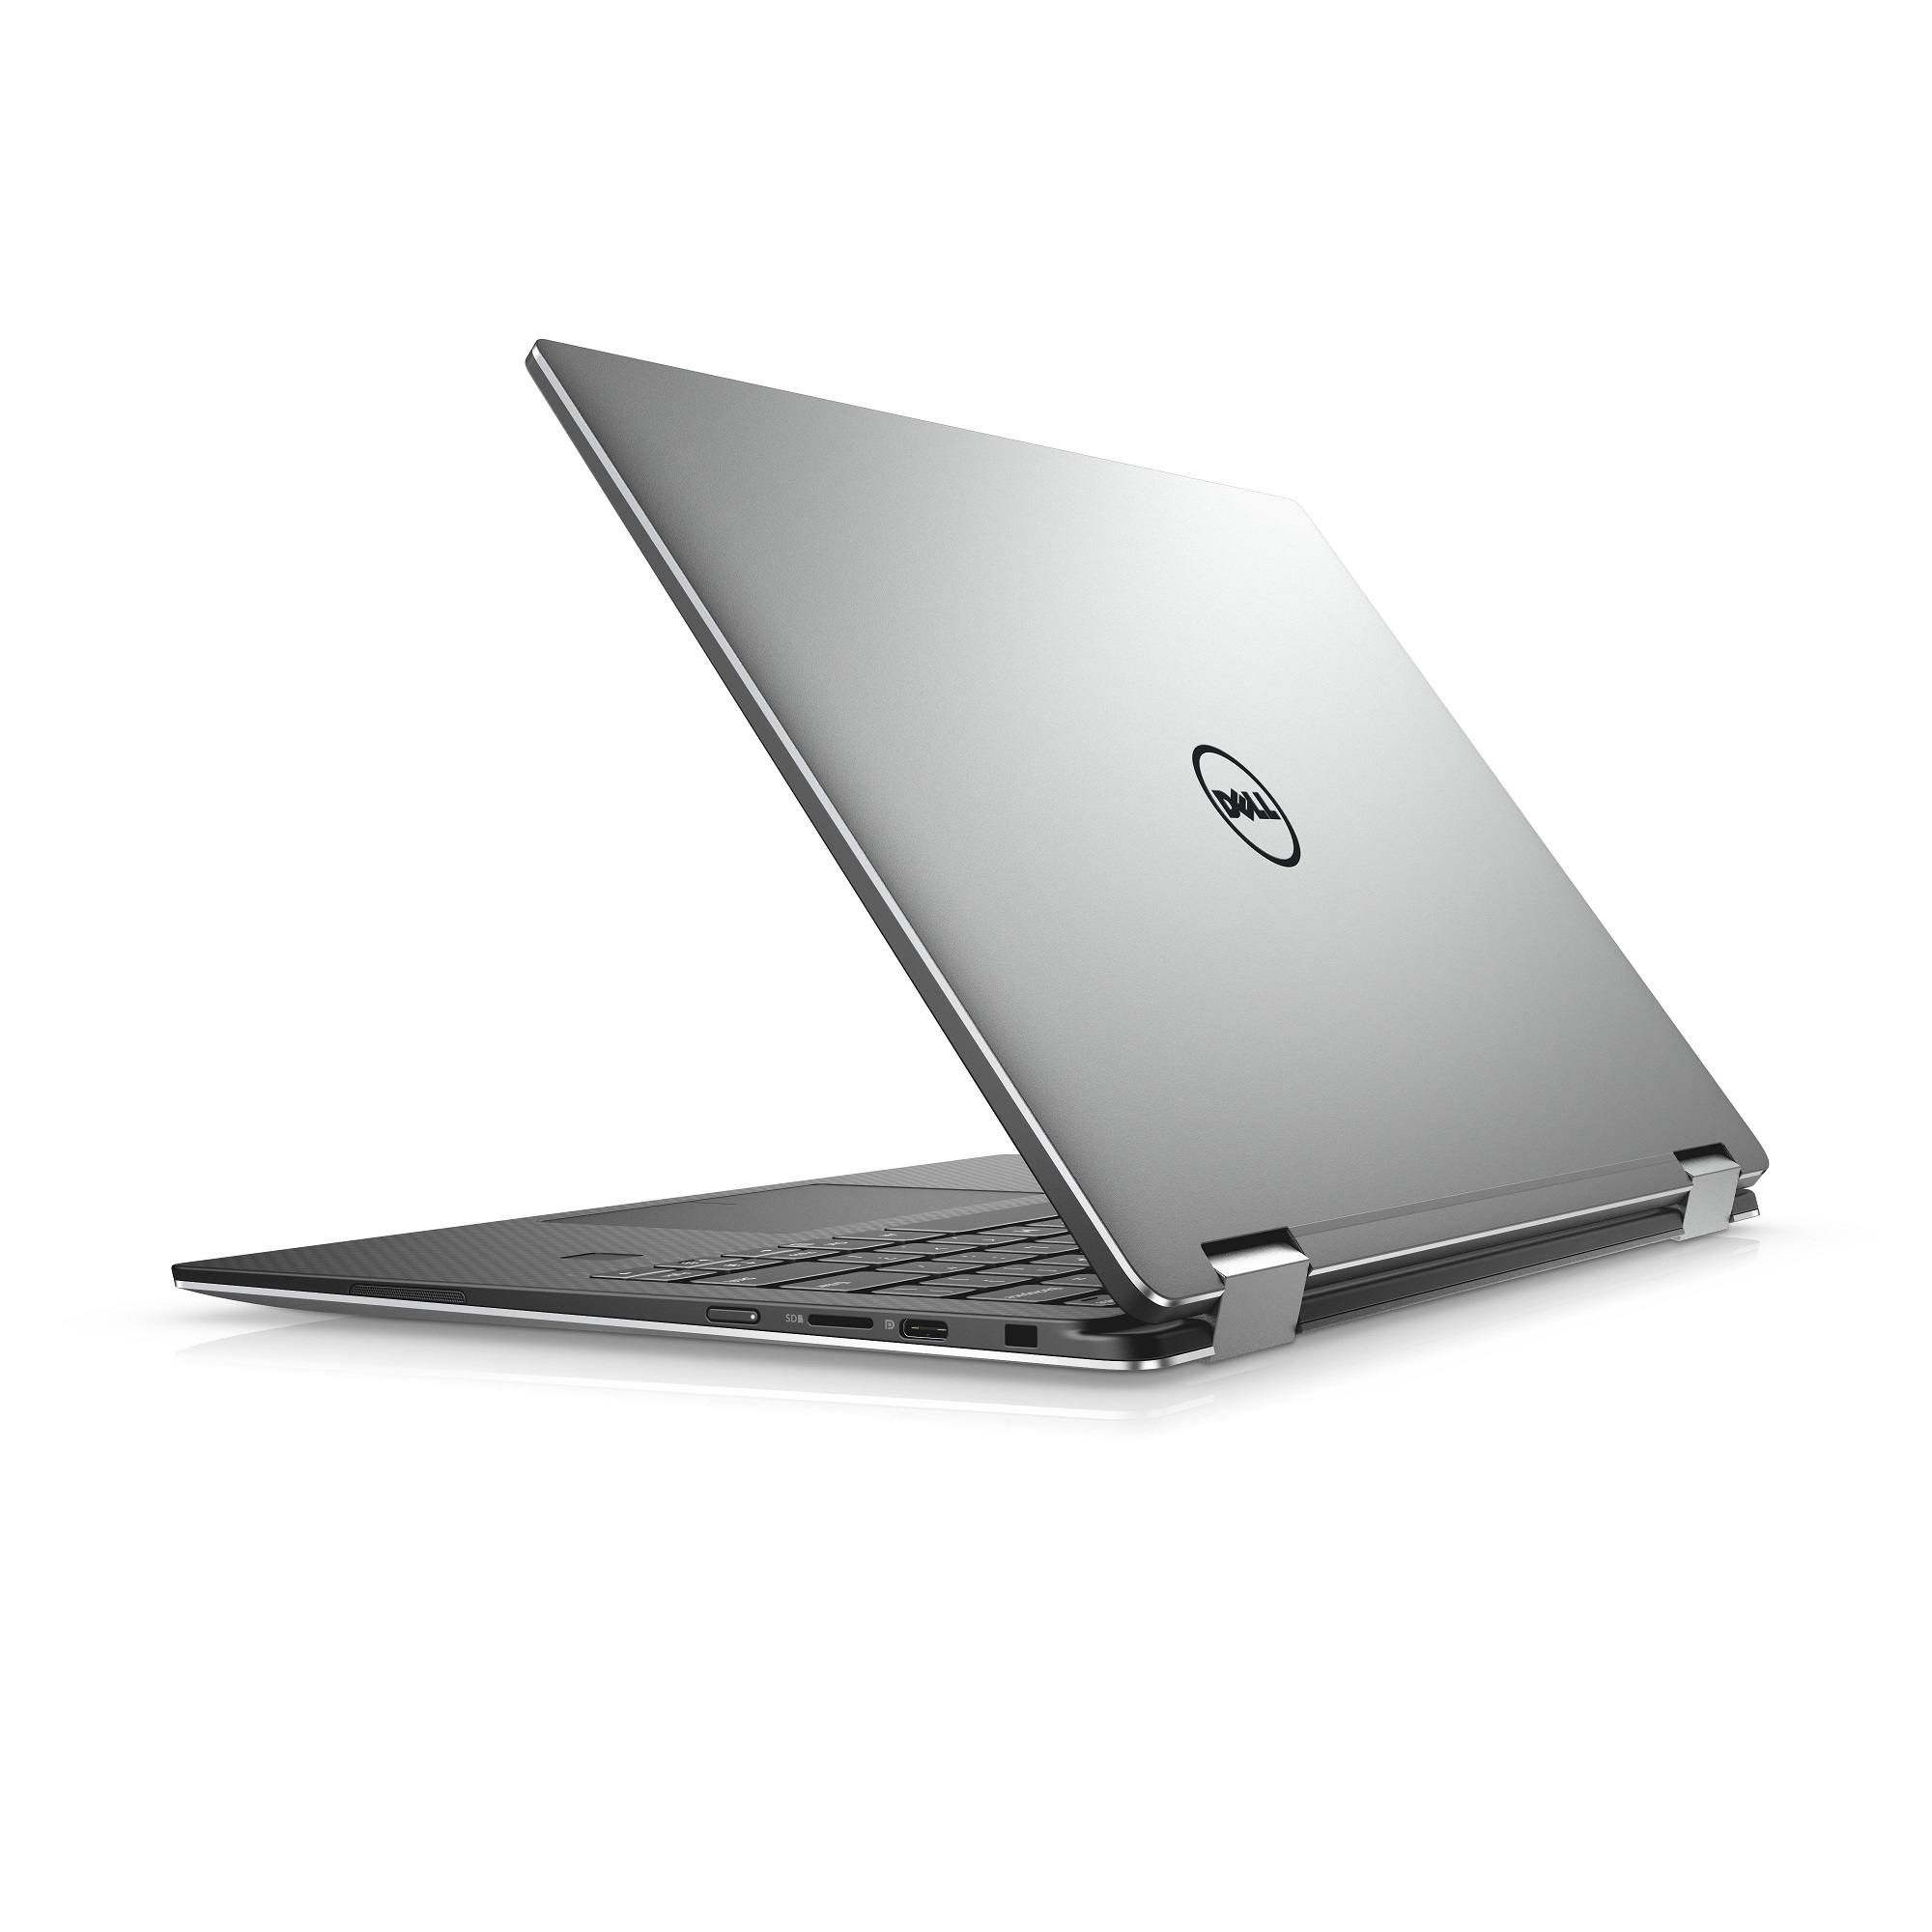 "DELL Ultrabook XPS 13 (9365)/i5-7Y57/8GB/256GB SSD/Intel HD 615/13.3"" FHD Touch/Win 10 MUI/Black"